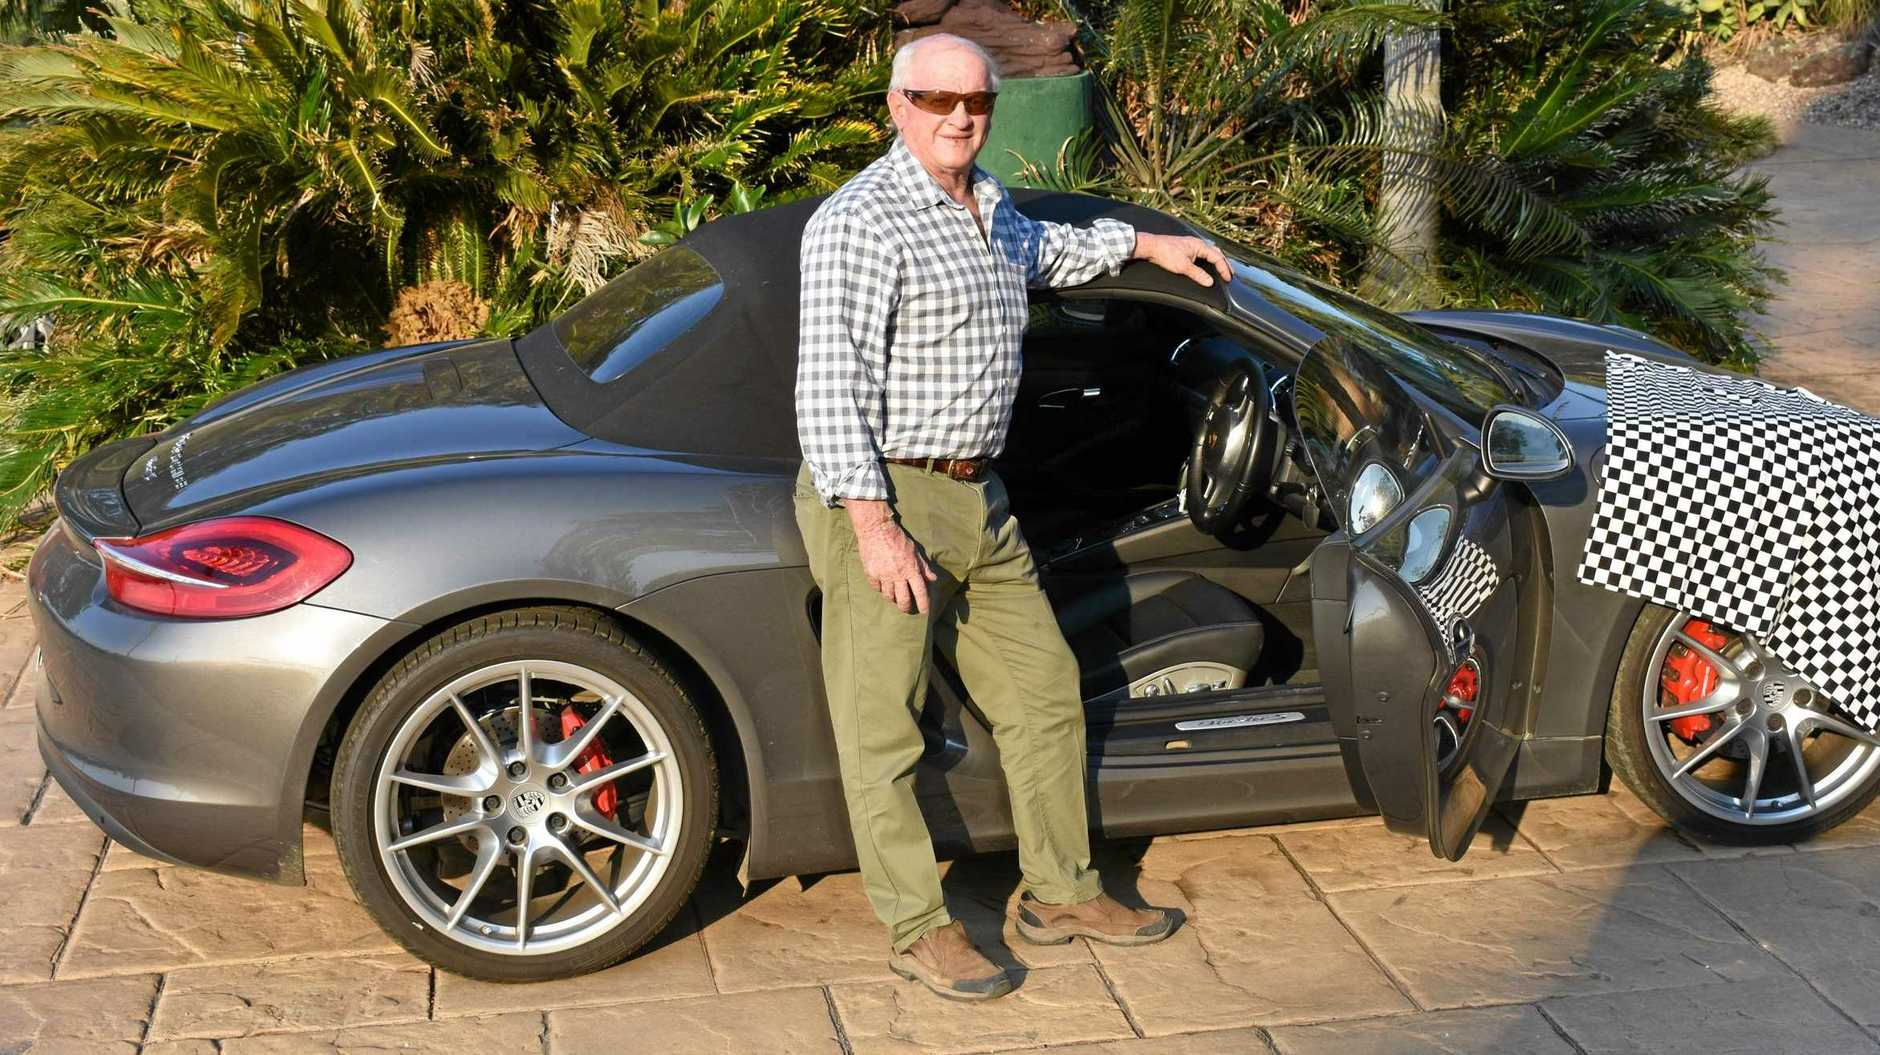 ABOVE: John Graham from Grahams Concrete in Kyogle has accepted the challenge to race his Porsche against Jack Parker's Mustang at the drag races in Casino on Sunday.